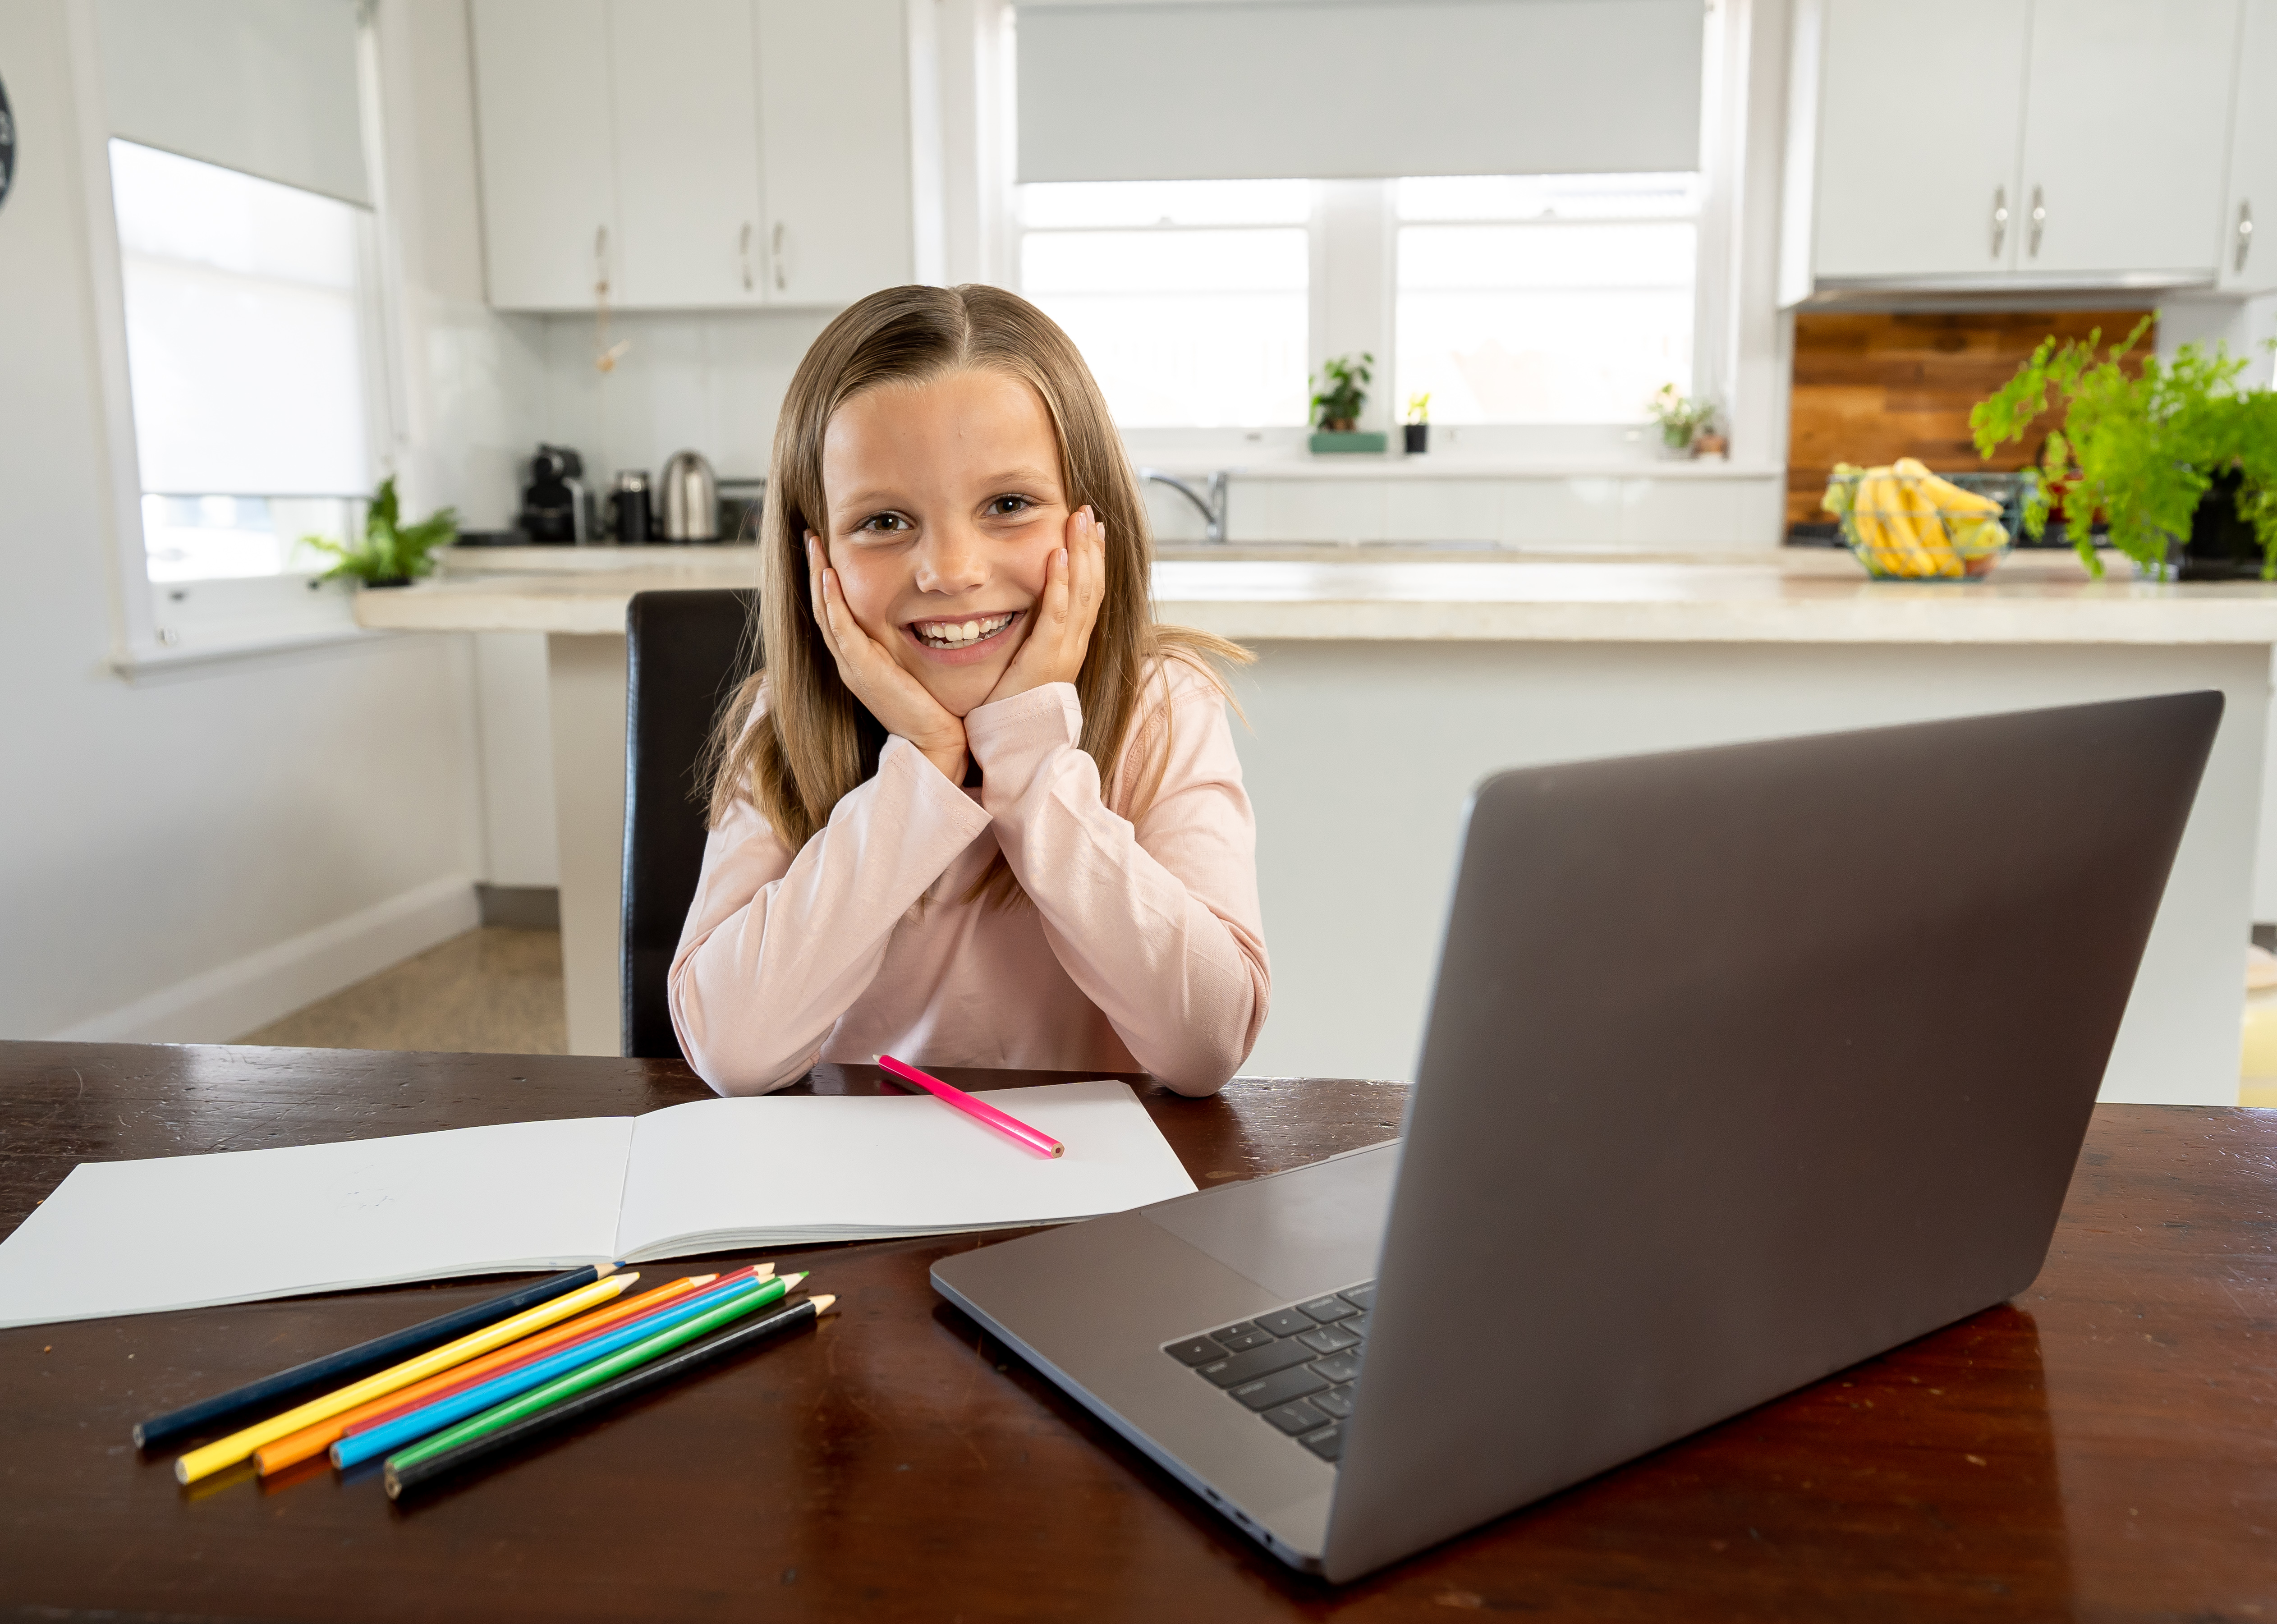 Coronavirus Outbreak. Lockdown and school closures. Schoolgirl watching online education class, happy talking with teacher on the internet at home. COVID-19 pandemic forces children online learning.